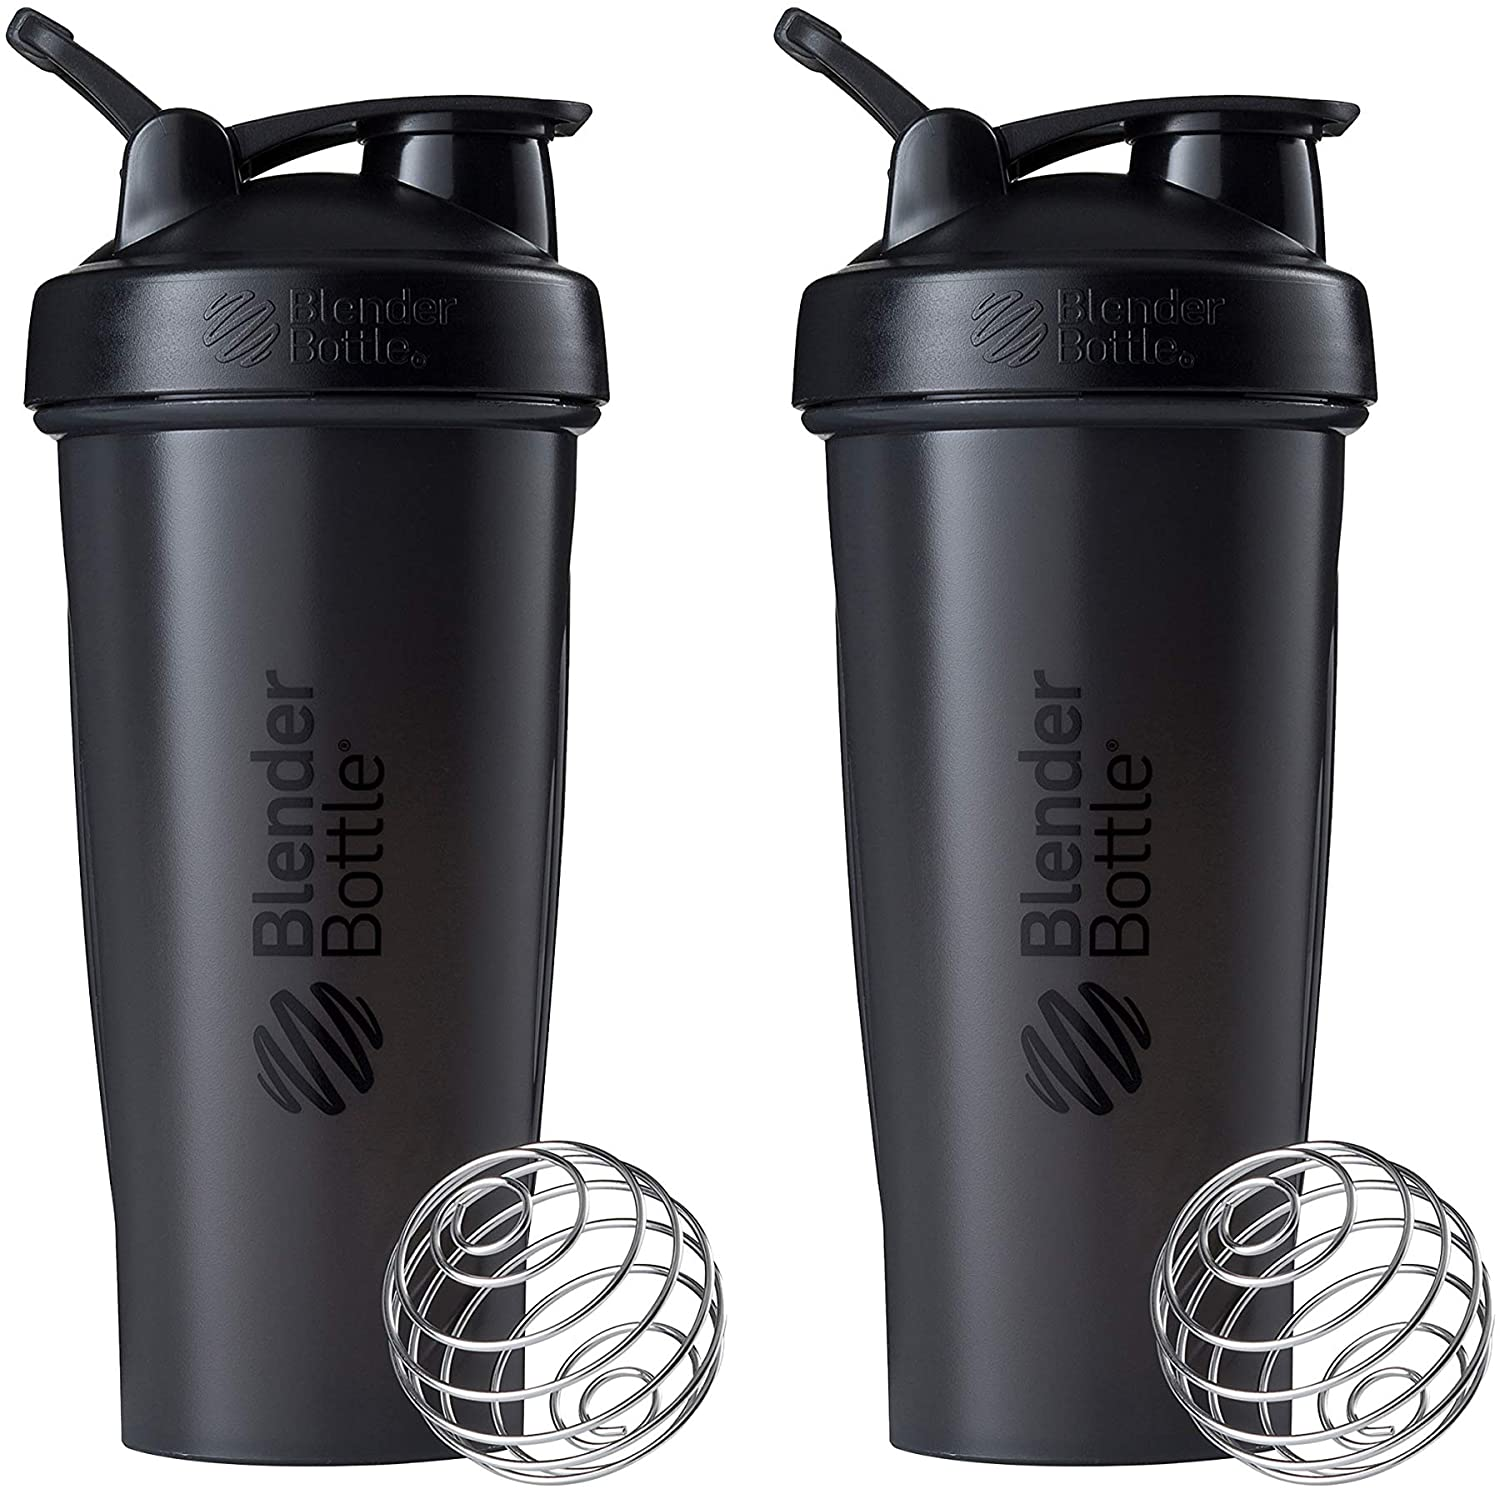 BlenderBottle Classic Shaker Bottle Miami Mall Perfect for Protein Shakes a Clearance SALE Limited time